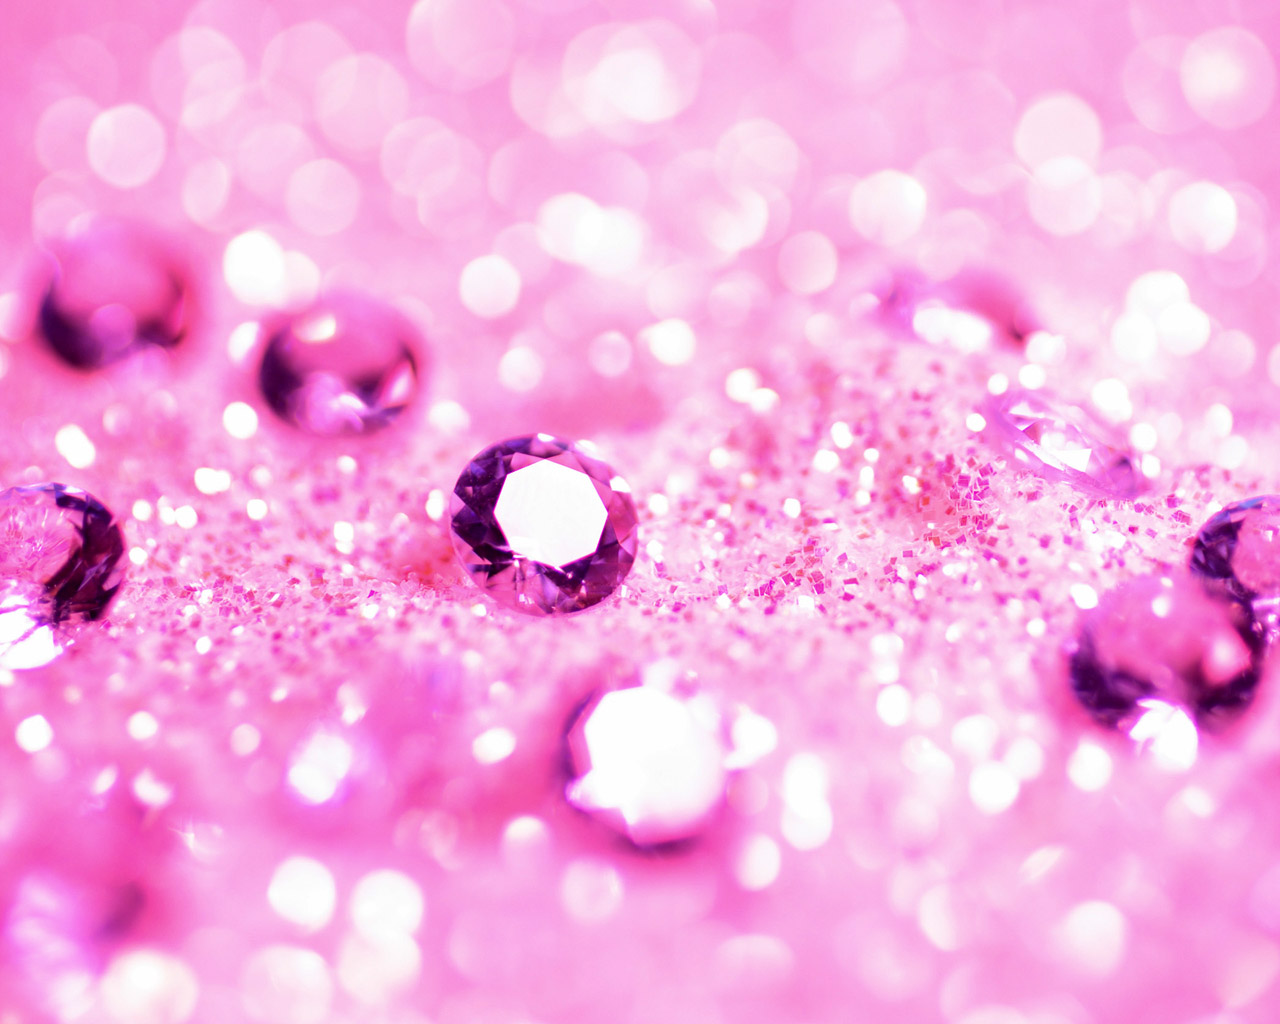 40 Cool Pink Wallpapers For Your Desktop Pictures to pin 1280x1024